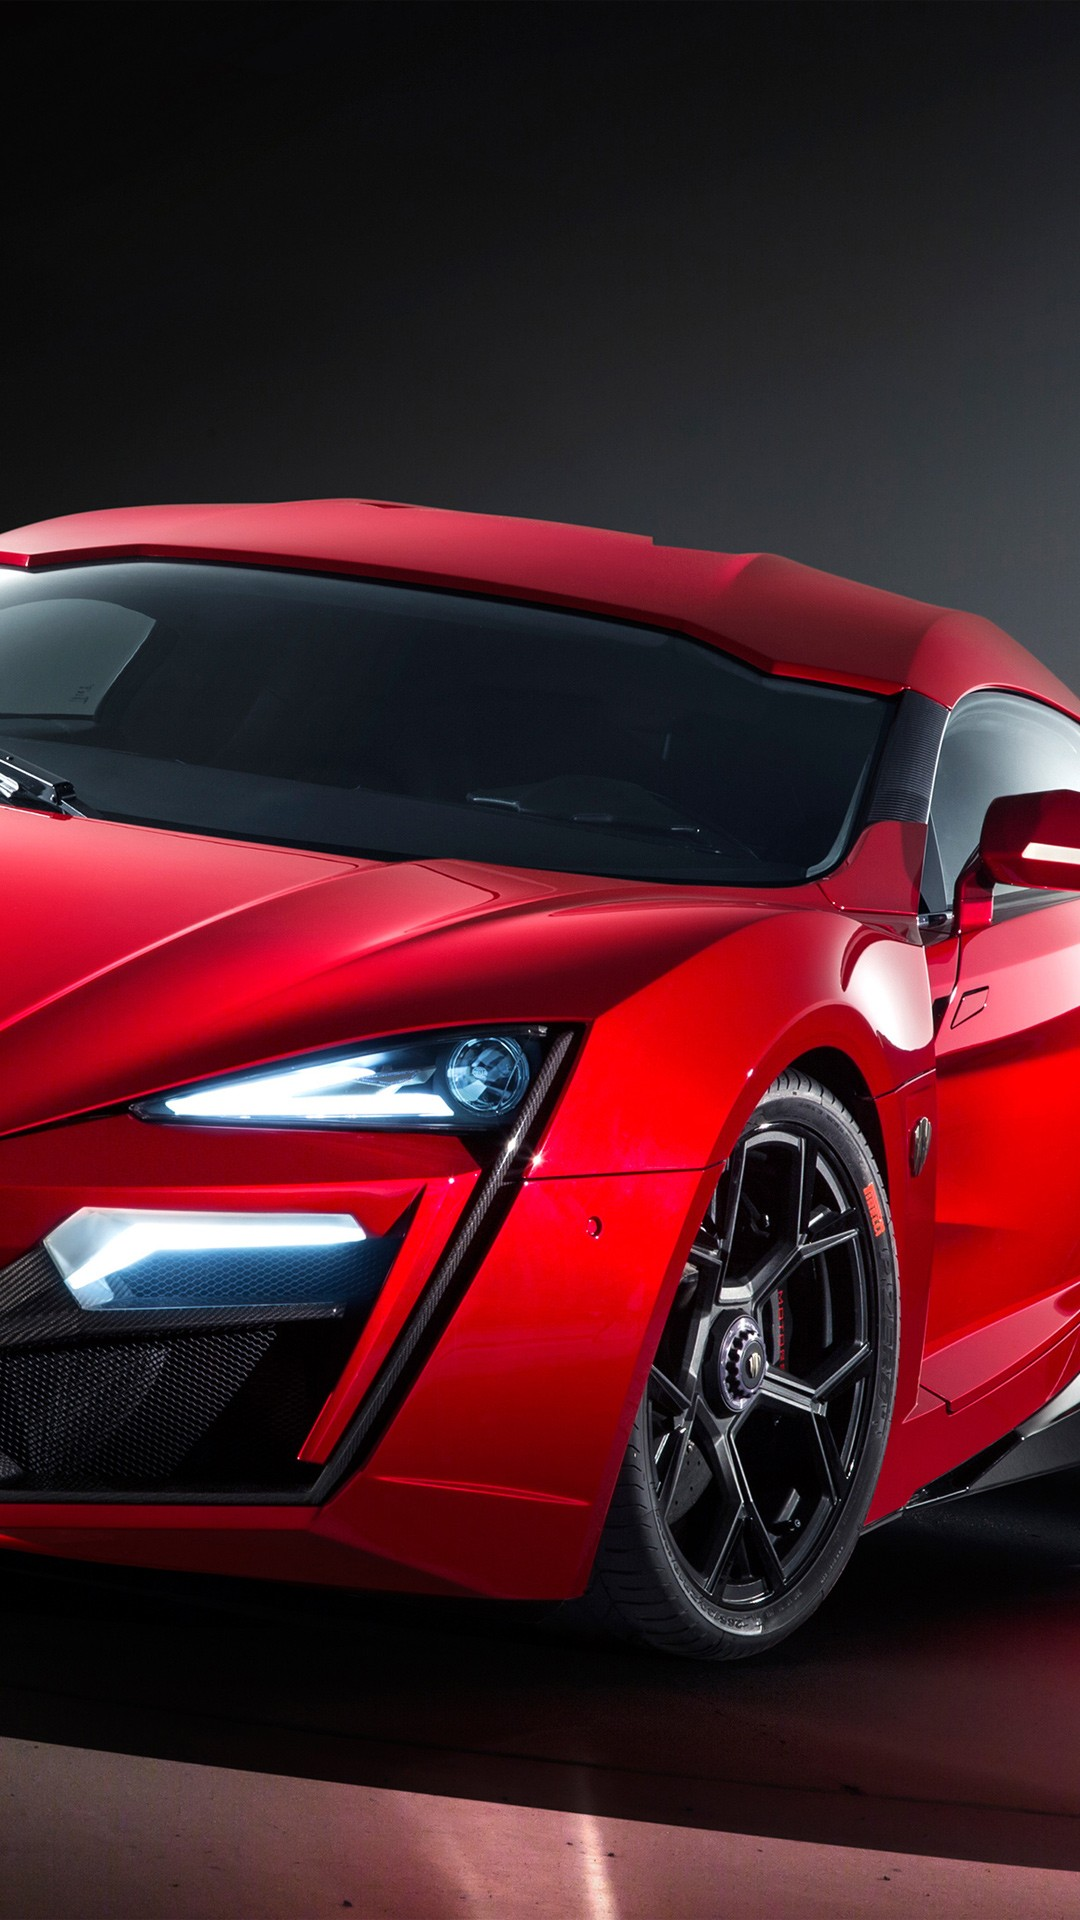 Super Cars Wallpapers Hd Download Lykan Hypersport Hypercar Wallpapers Hd Wallpapers Id